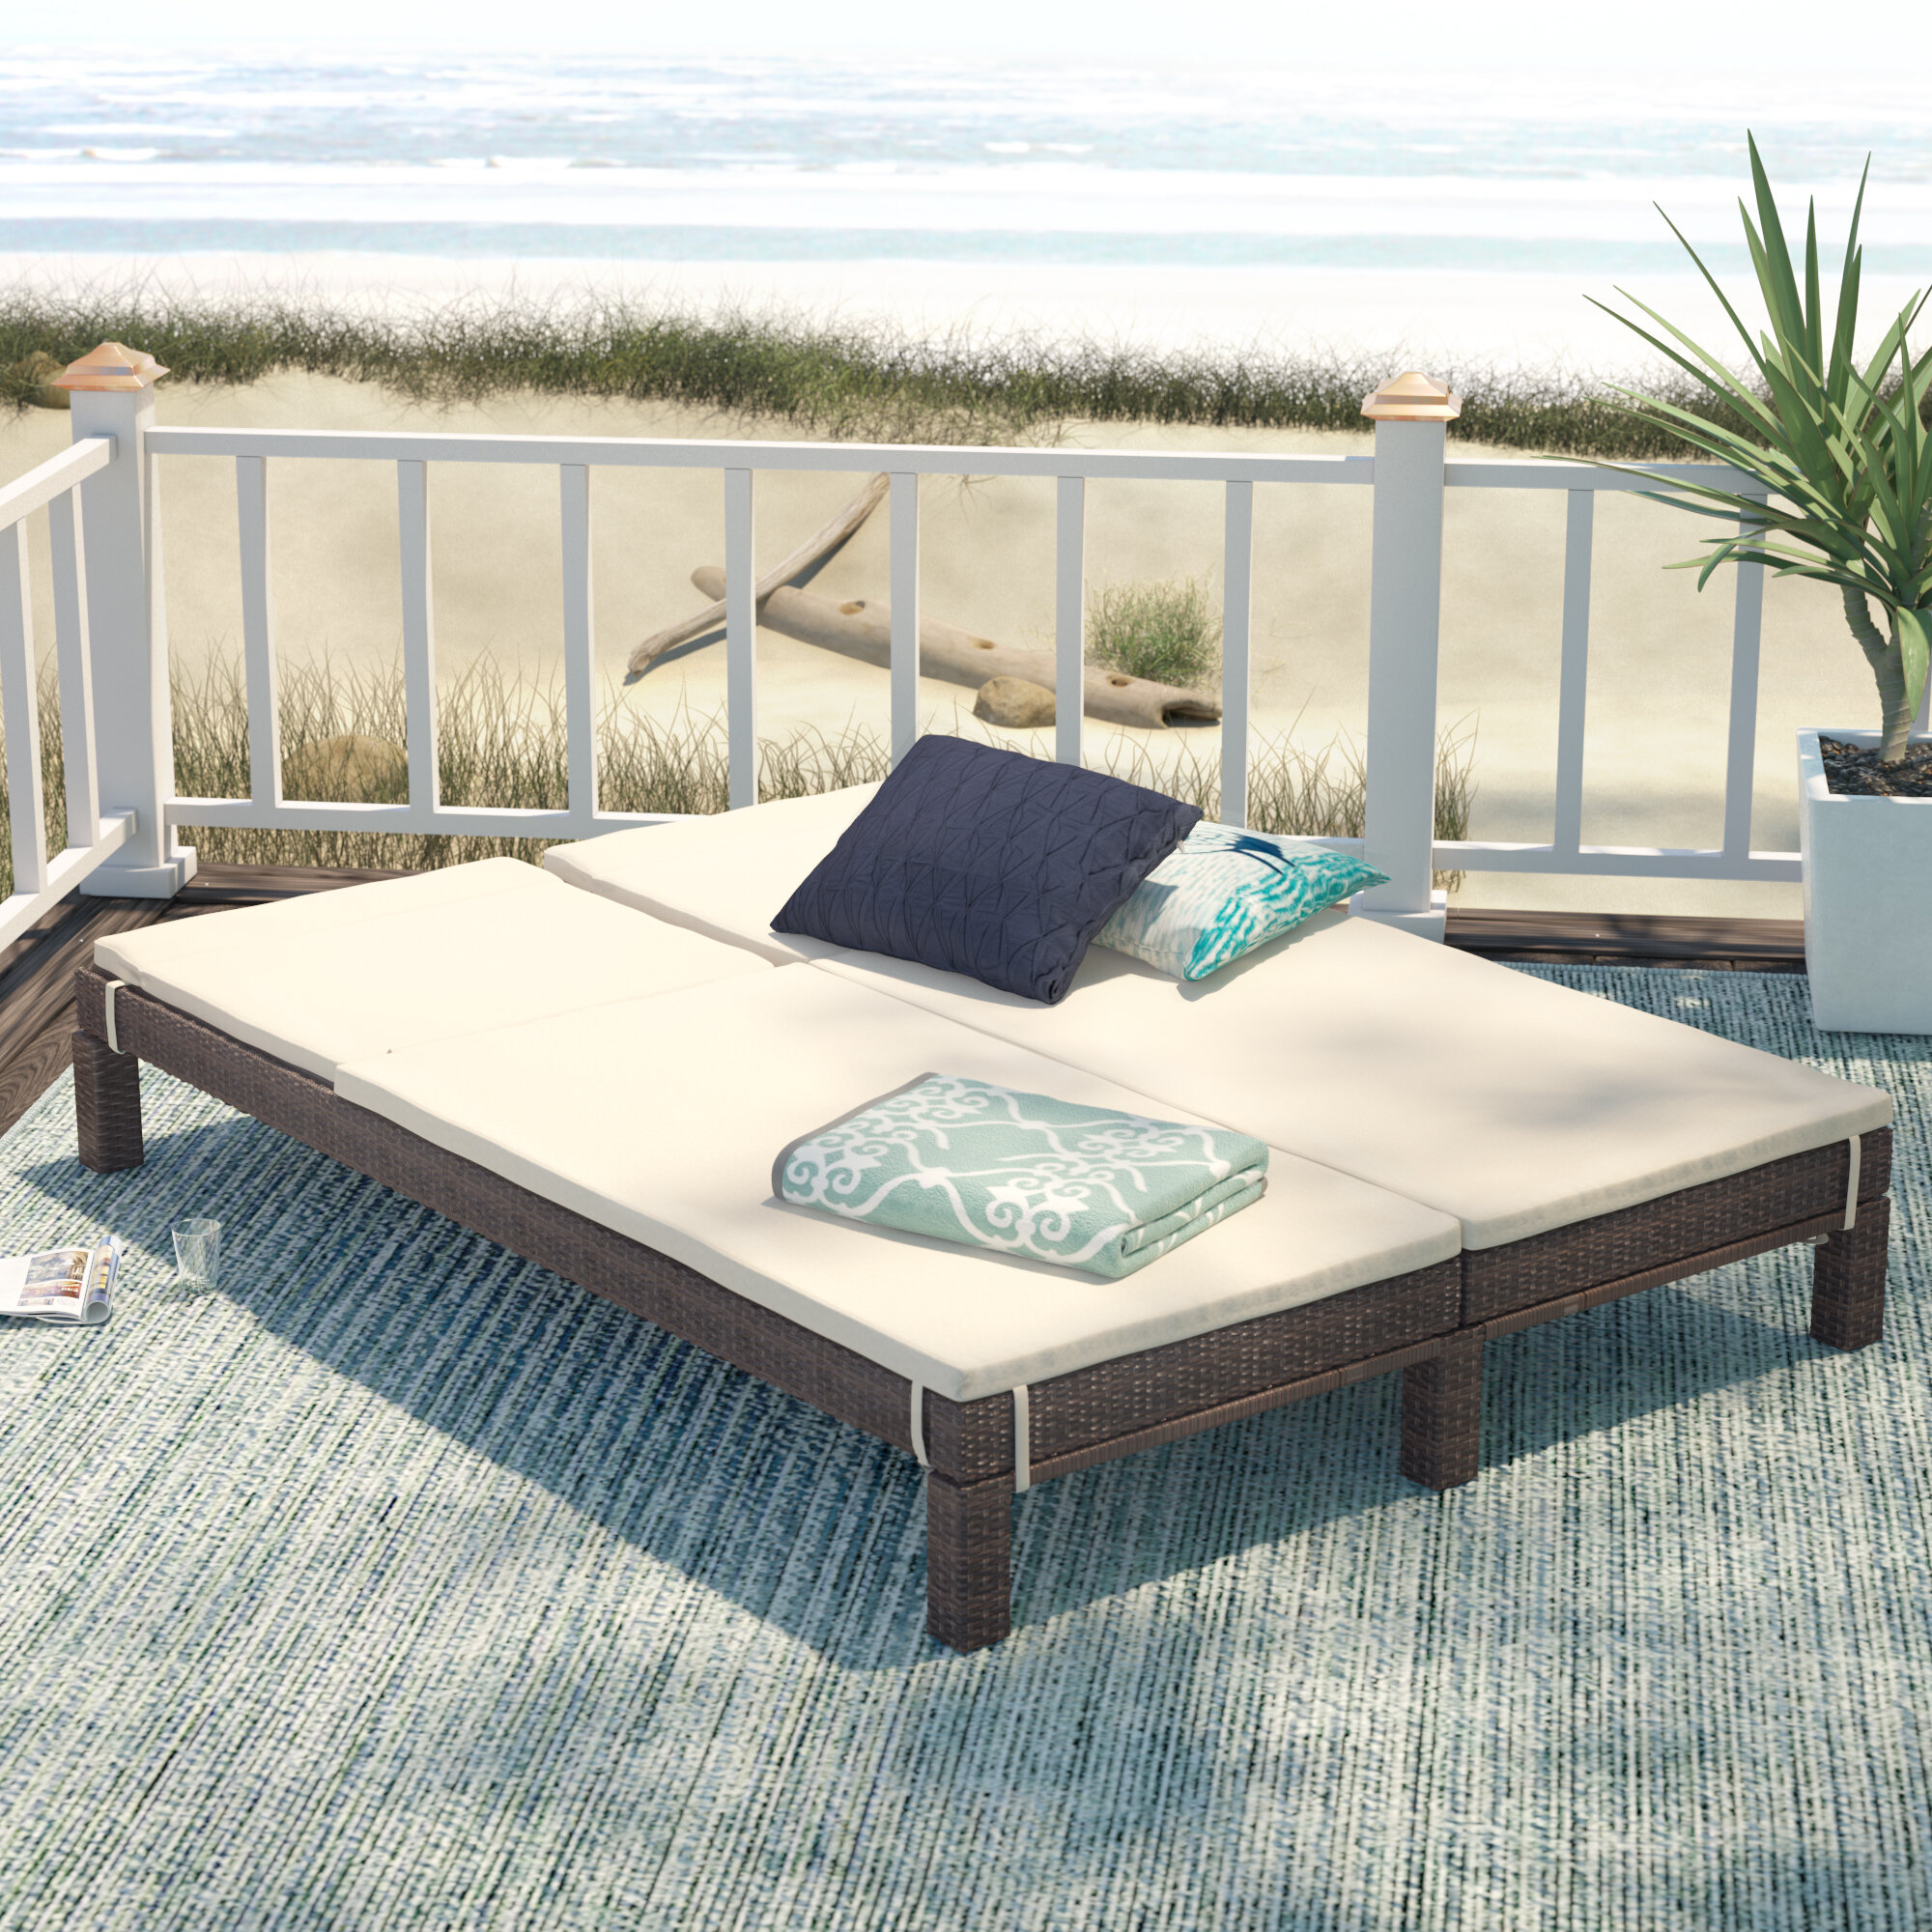 Beachcrest Home Belleview Wicker Double Reclining Chaise Lounge With Cushion Reviews Wayfair